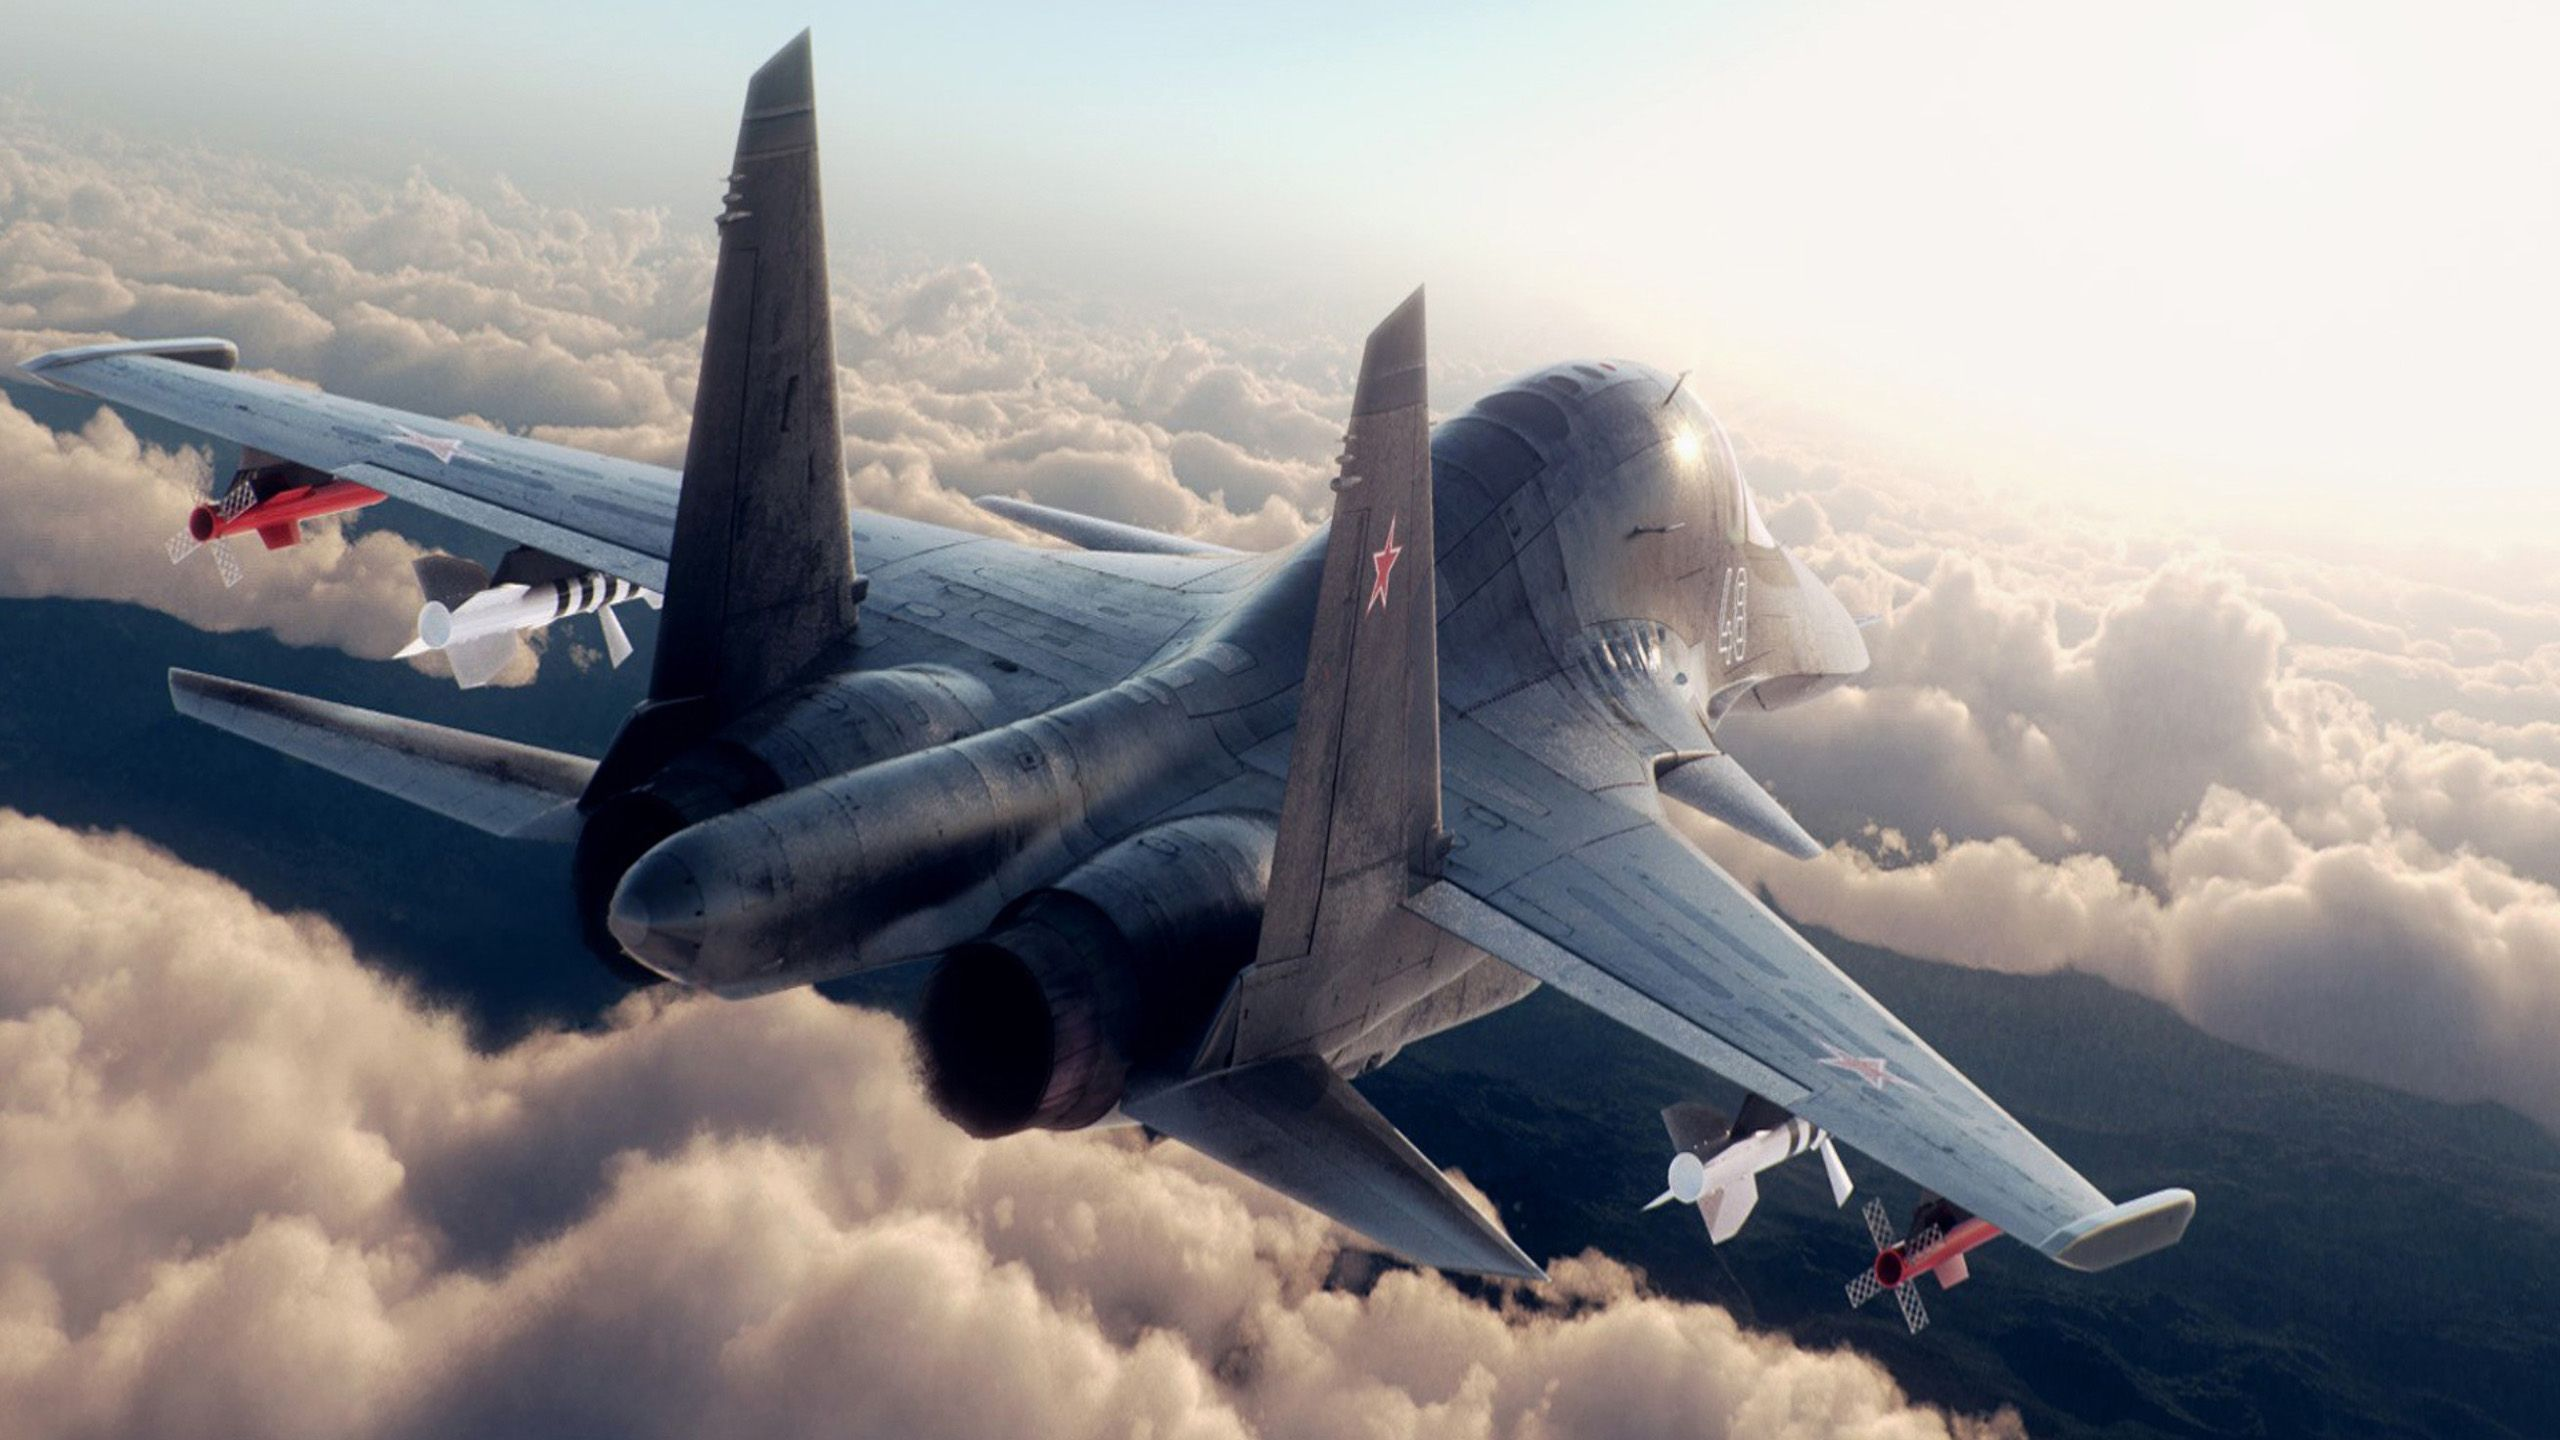 2560x1440 - Aircrafts Wallpapers 1